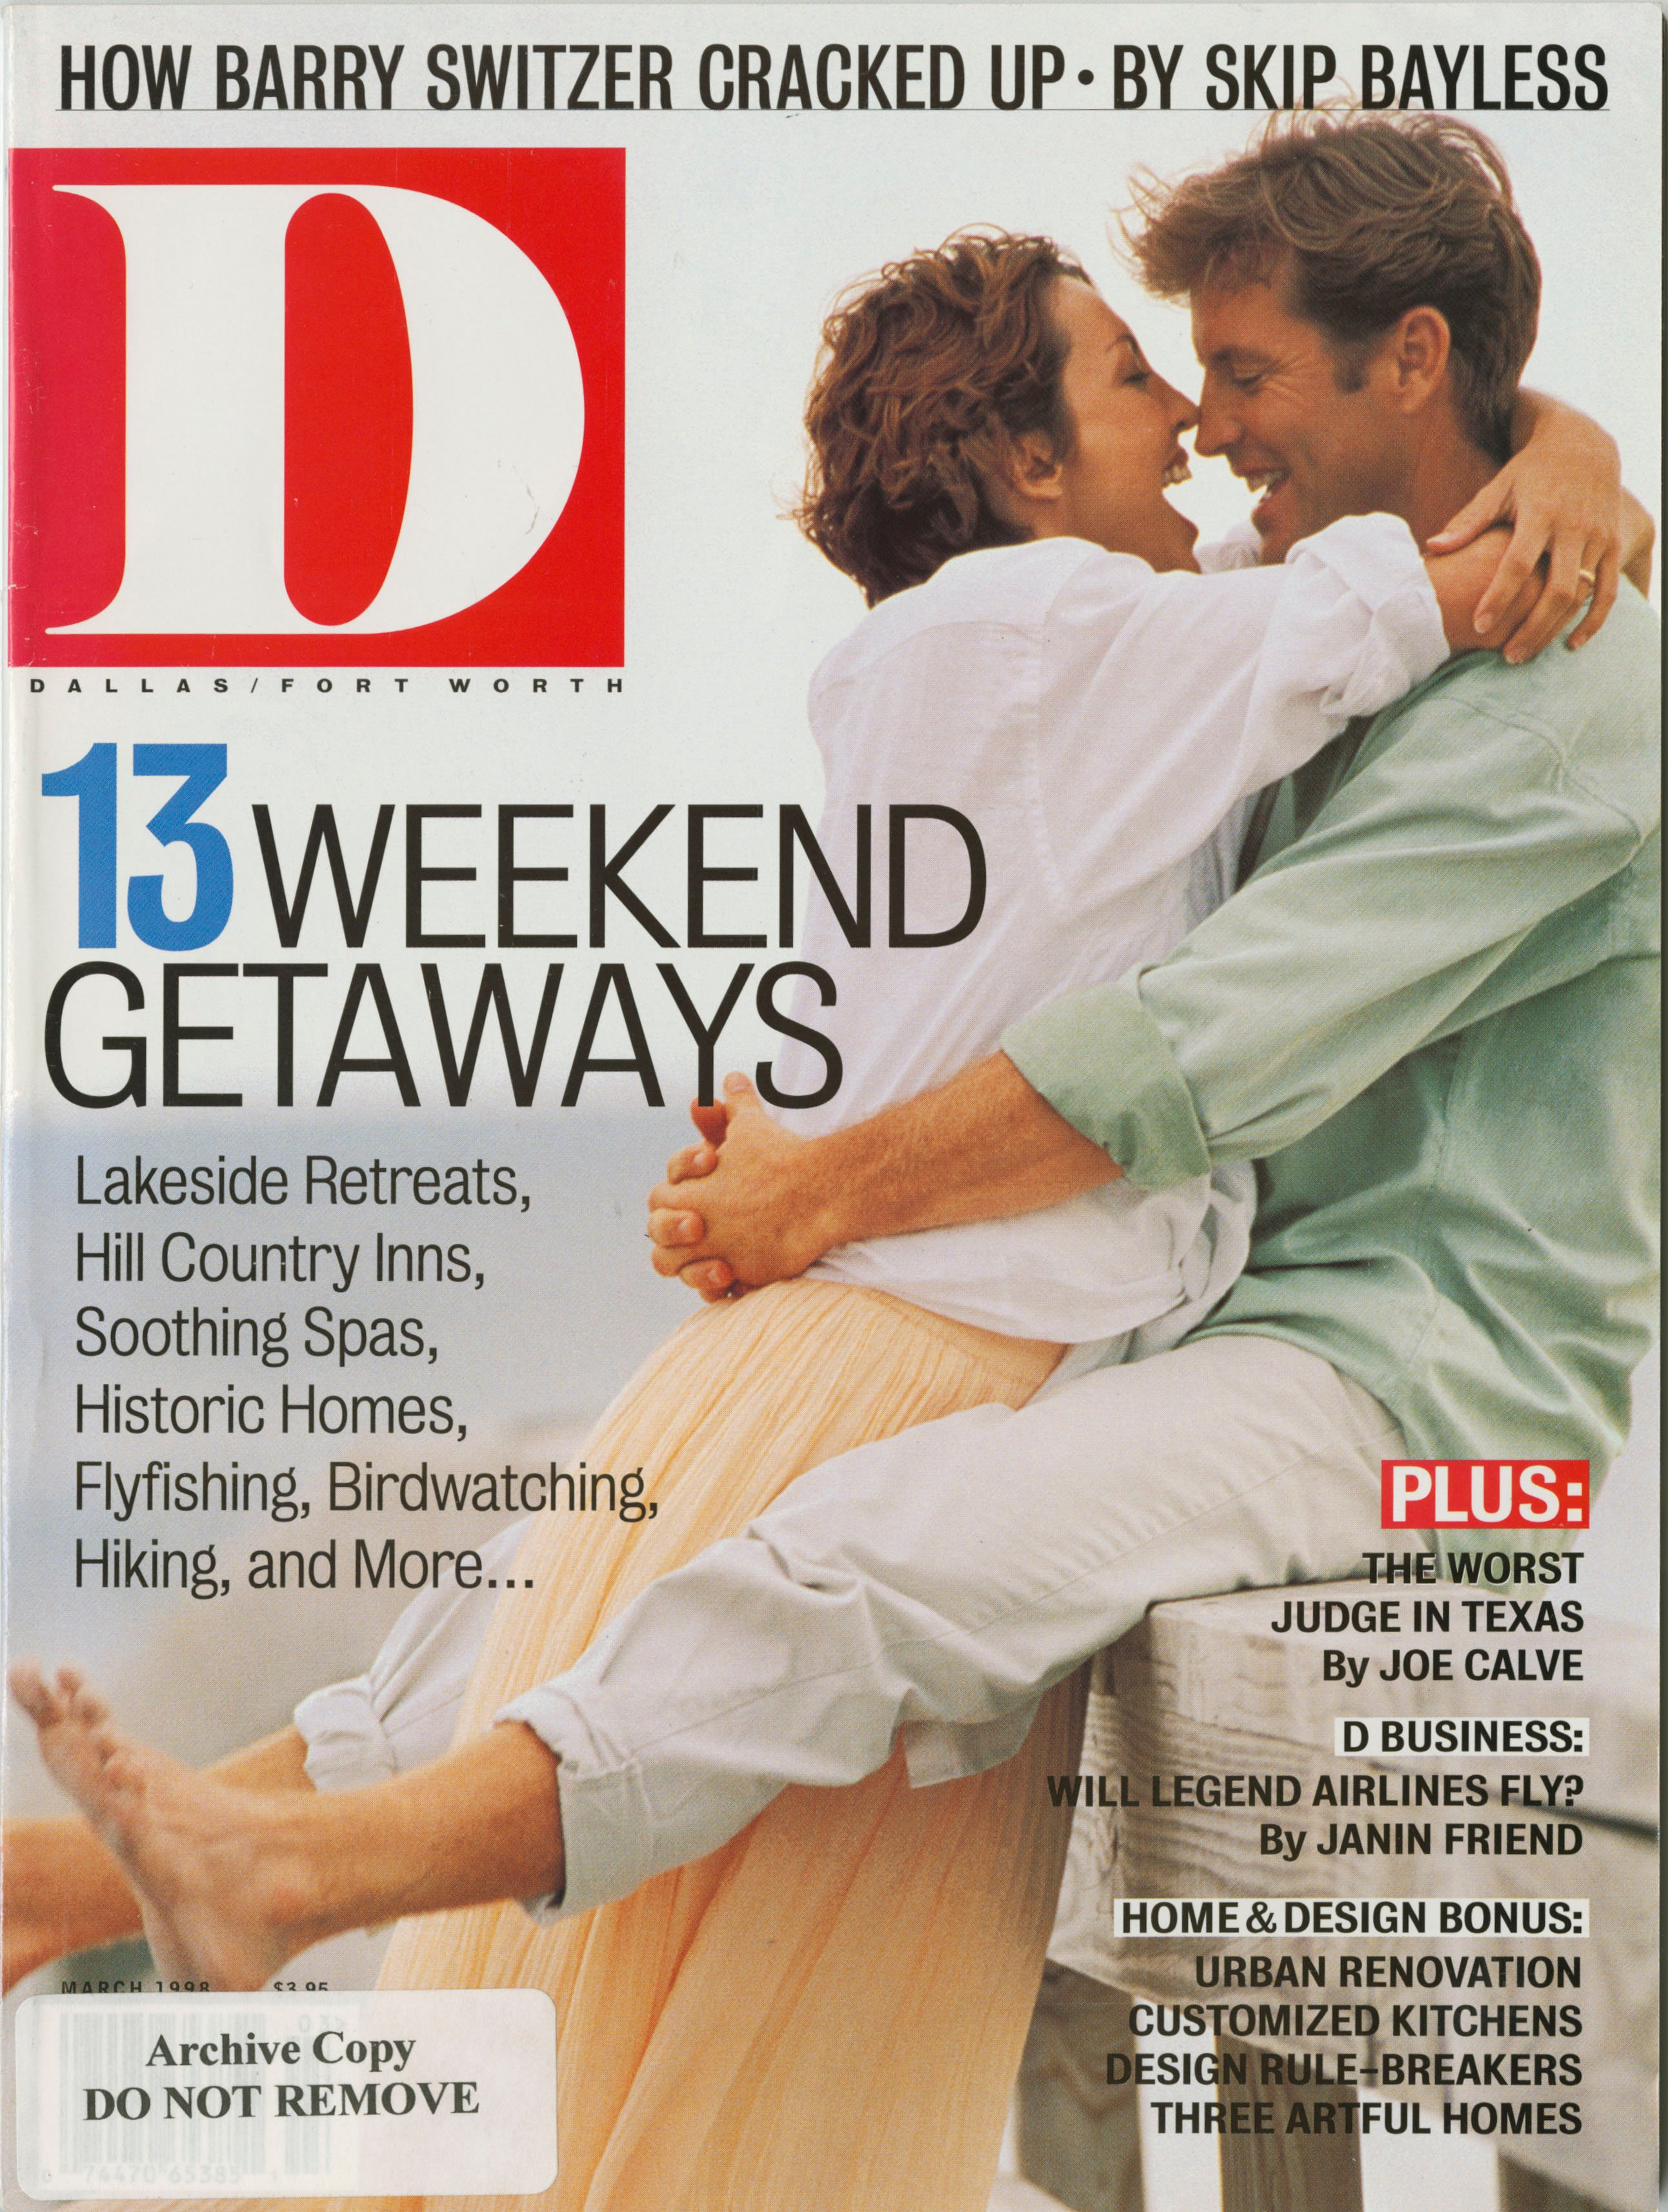 March 1998 cover